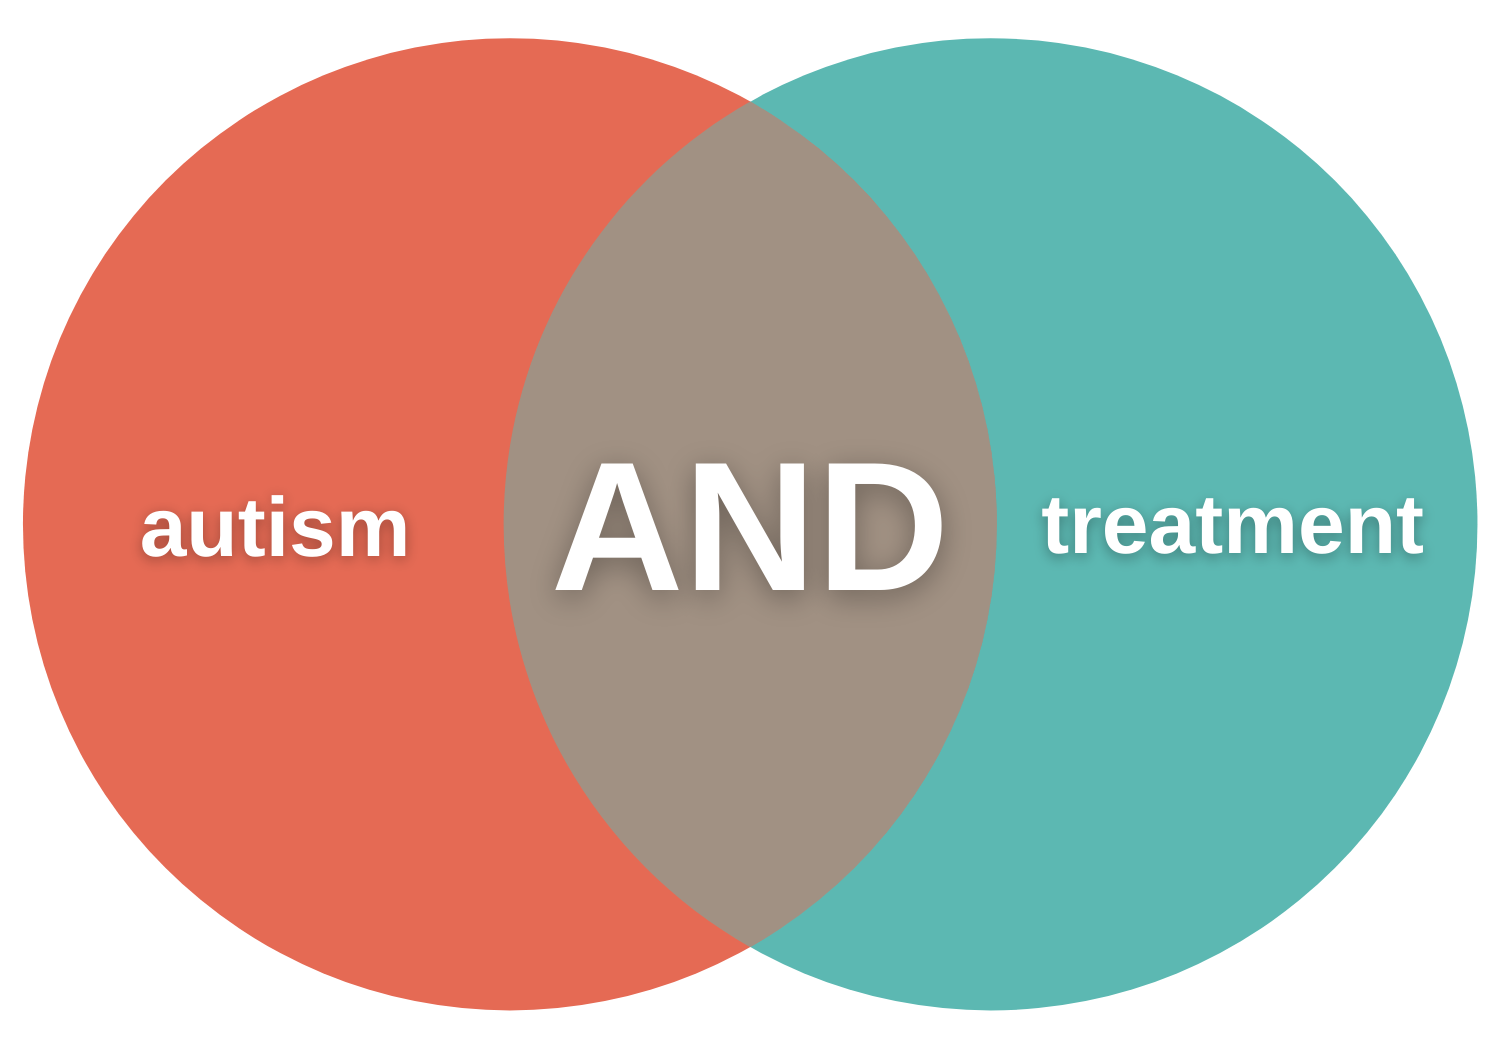 venn diagram with autism the left side, the Boolean operator AND in the middle, and treatment on the right side